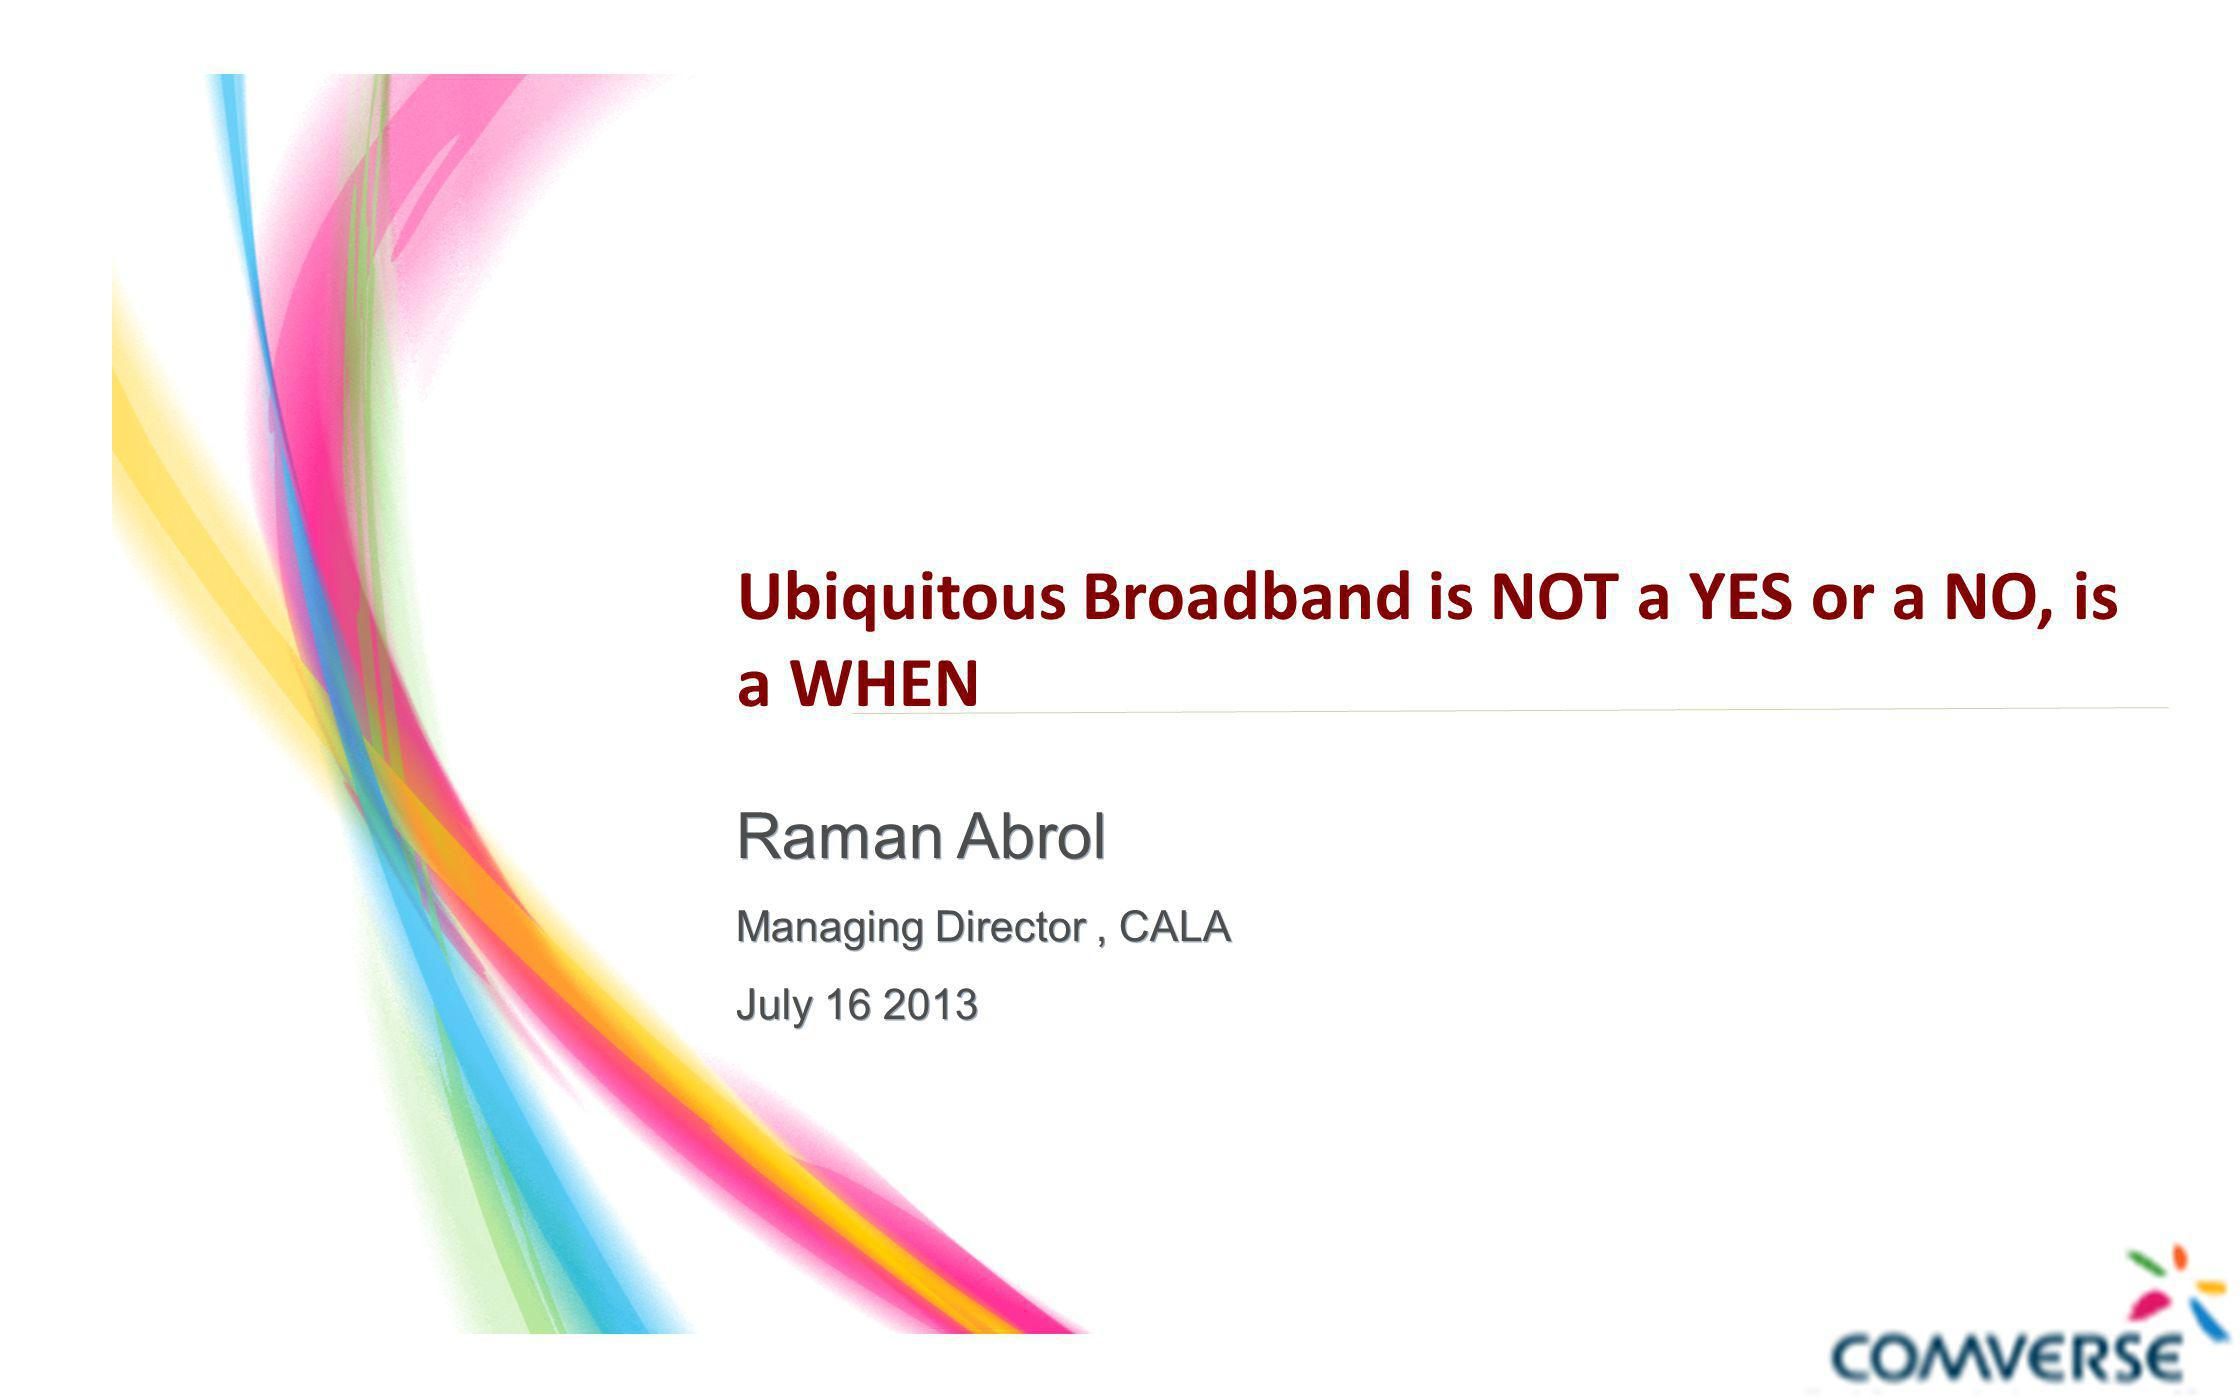 Ubiquitous Broadband is NOT a YES or a NO, is a WHEN Raman Abrol Managing Director, CALA July 16 2013 Raman Abrol Managing Director, CALA July 16 2013